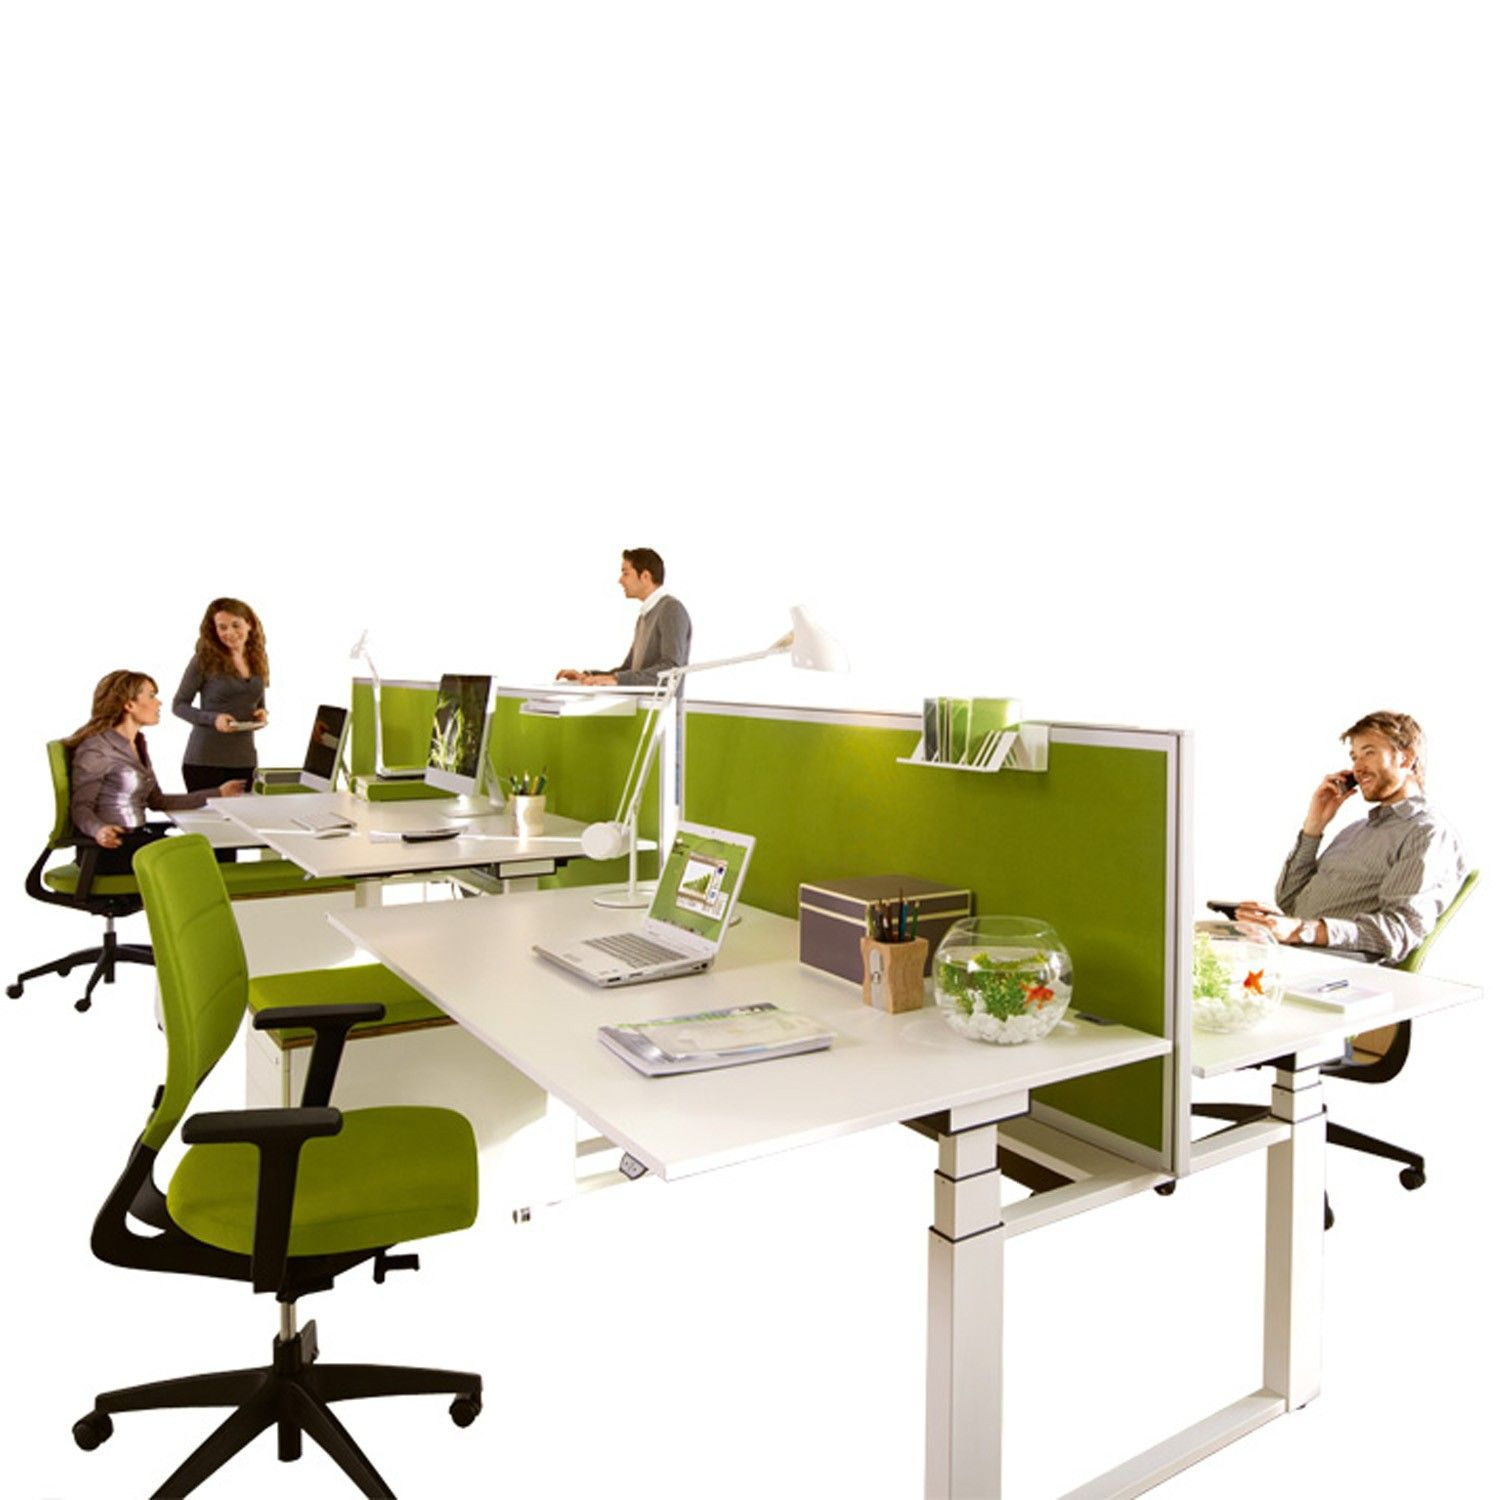 Temptation Twin Height Adjustable Desk programme manufactured by Sedus offers the open plan office workplace the versatility it requires while answering